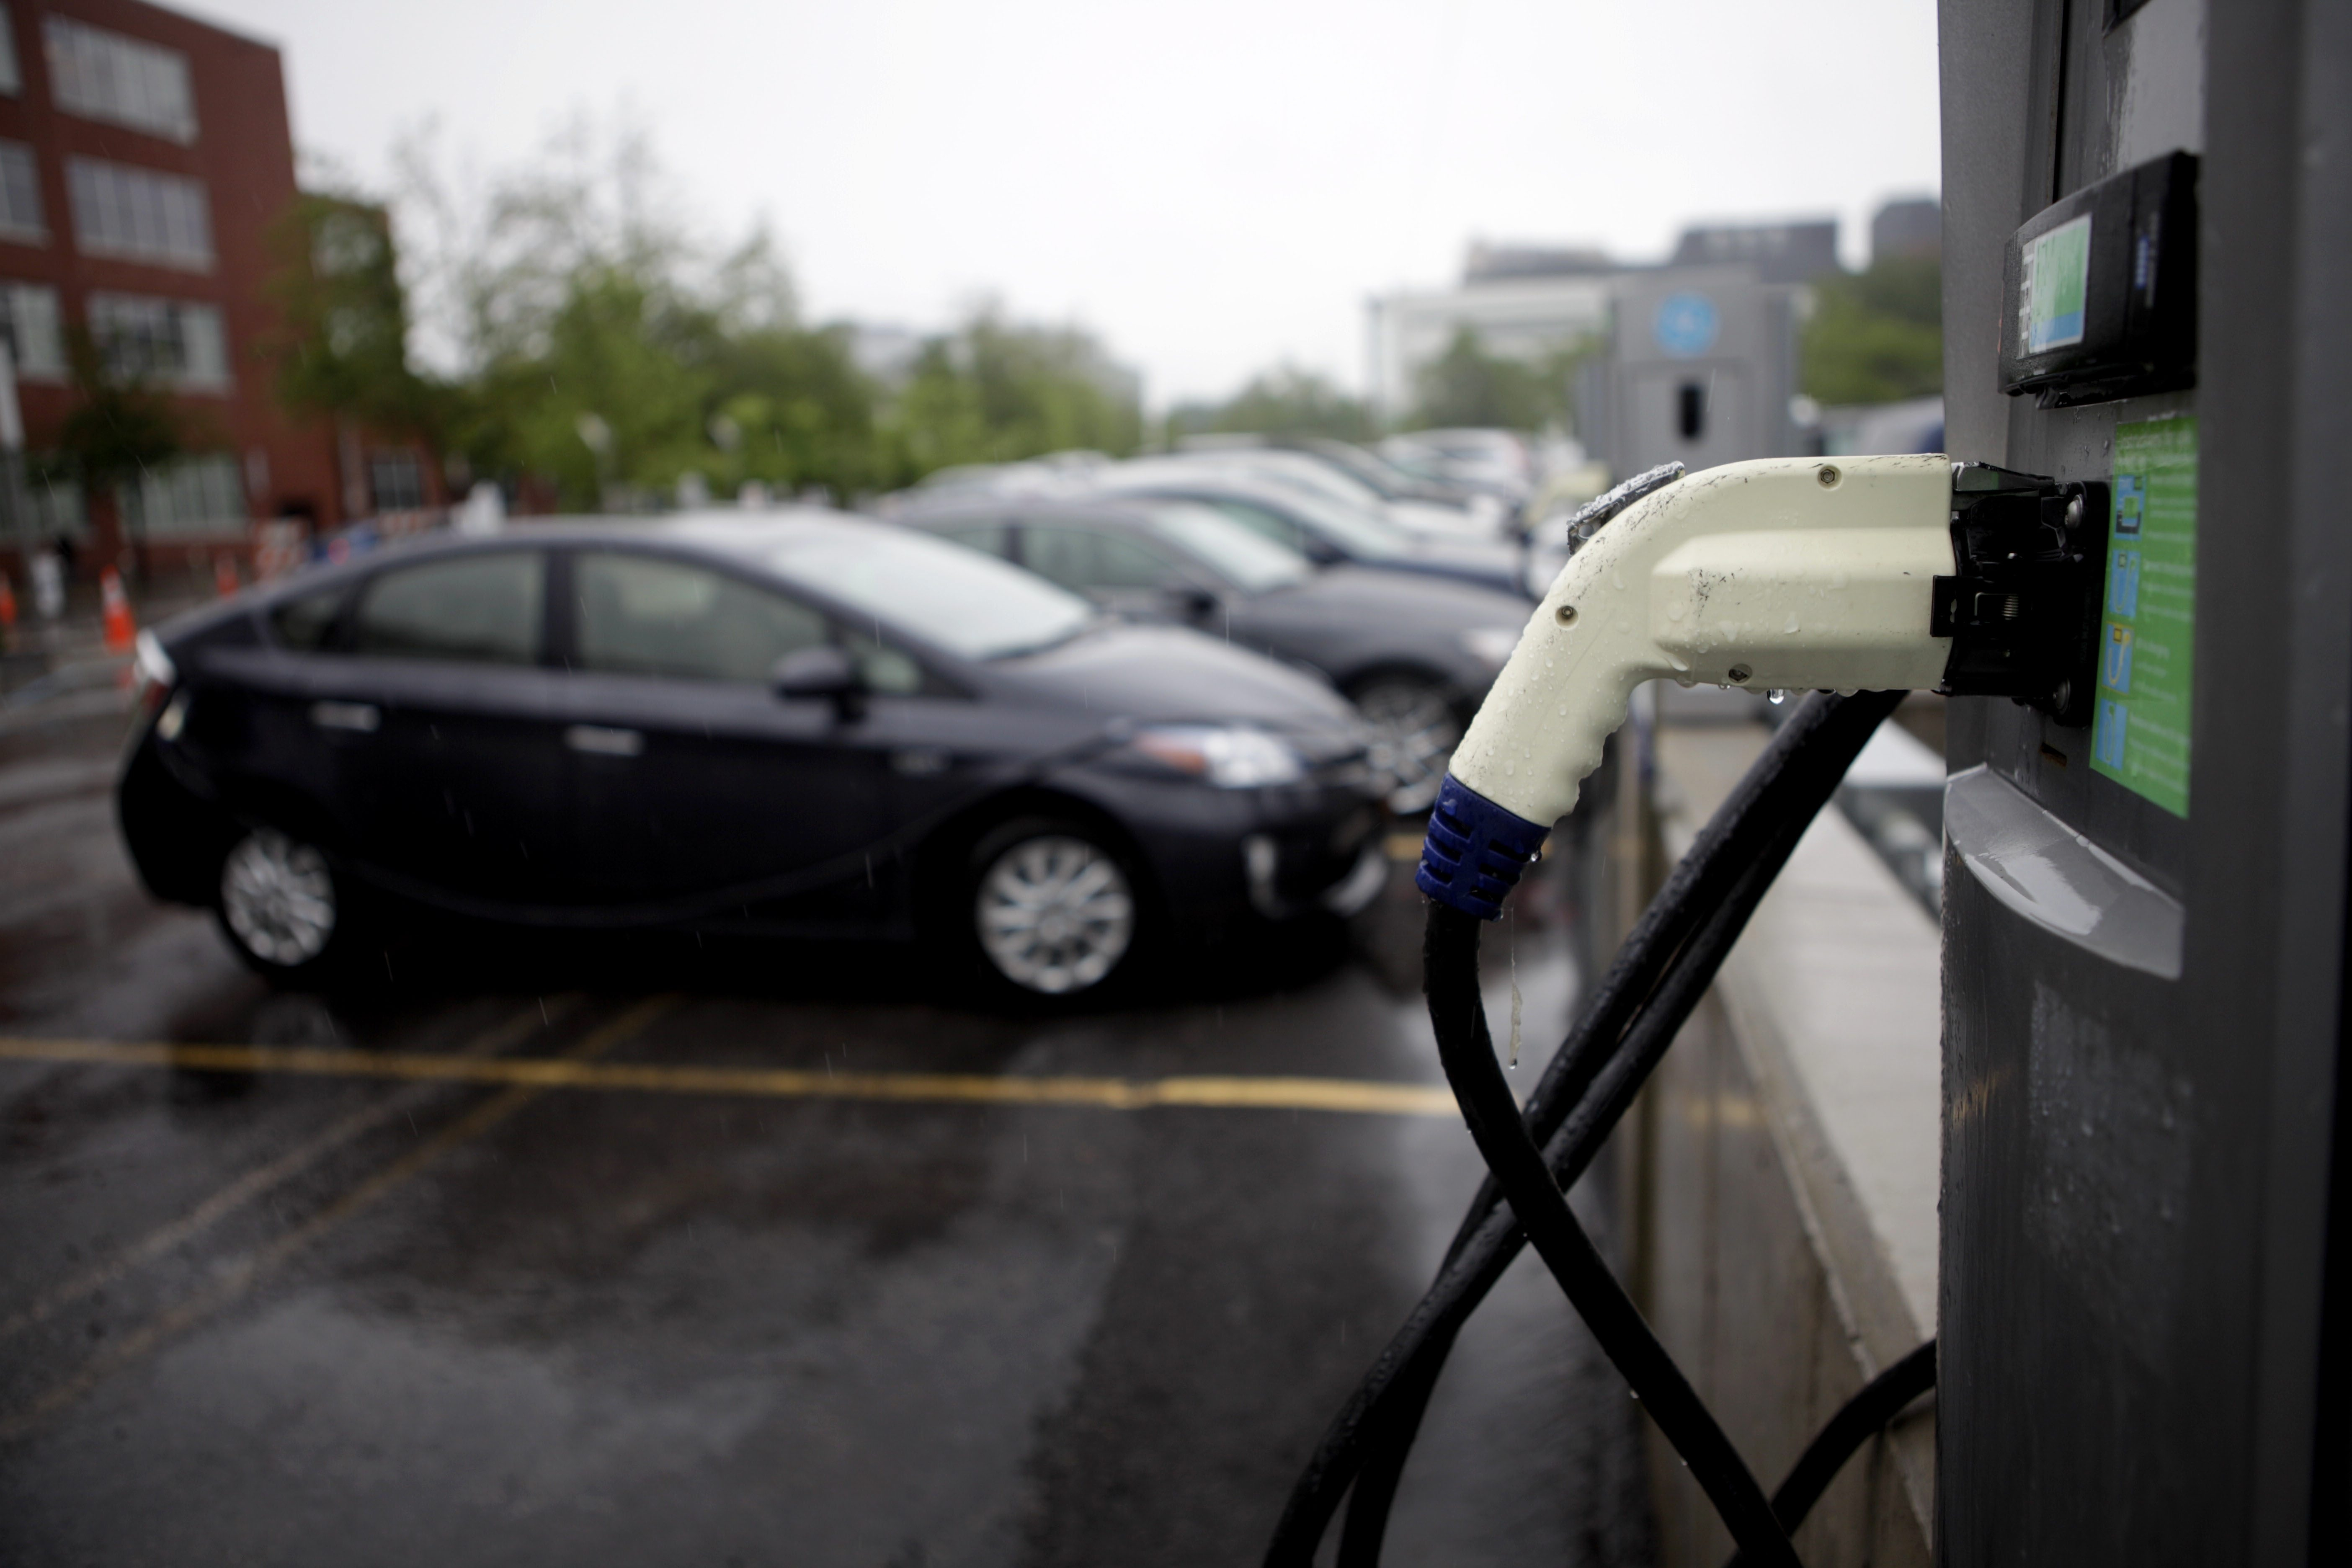 National Grid is installing 67 recharging stations in upstate, with about 20 in Western New York, including a Tops Market at Main Street and Union Road in Amherst.